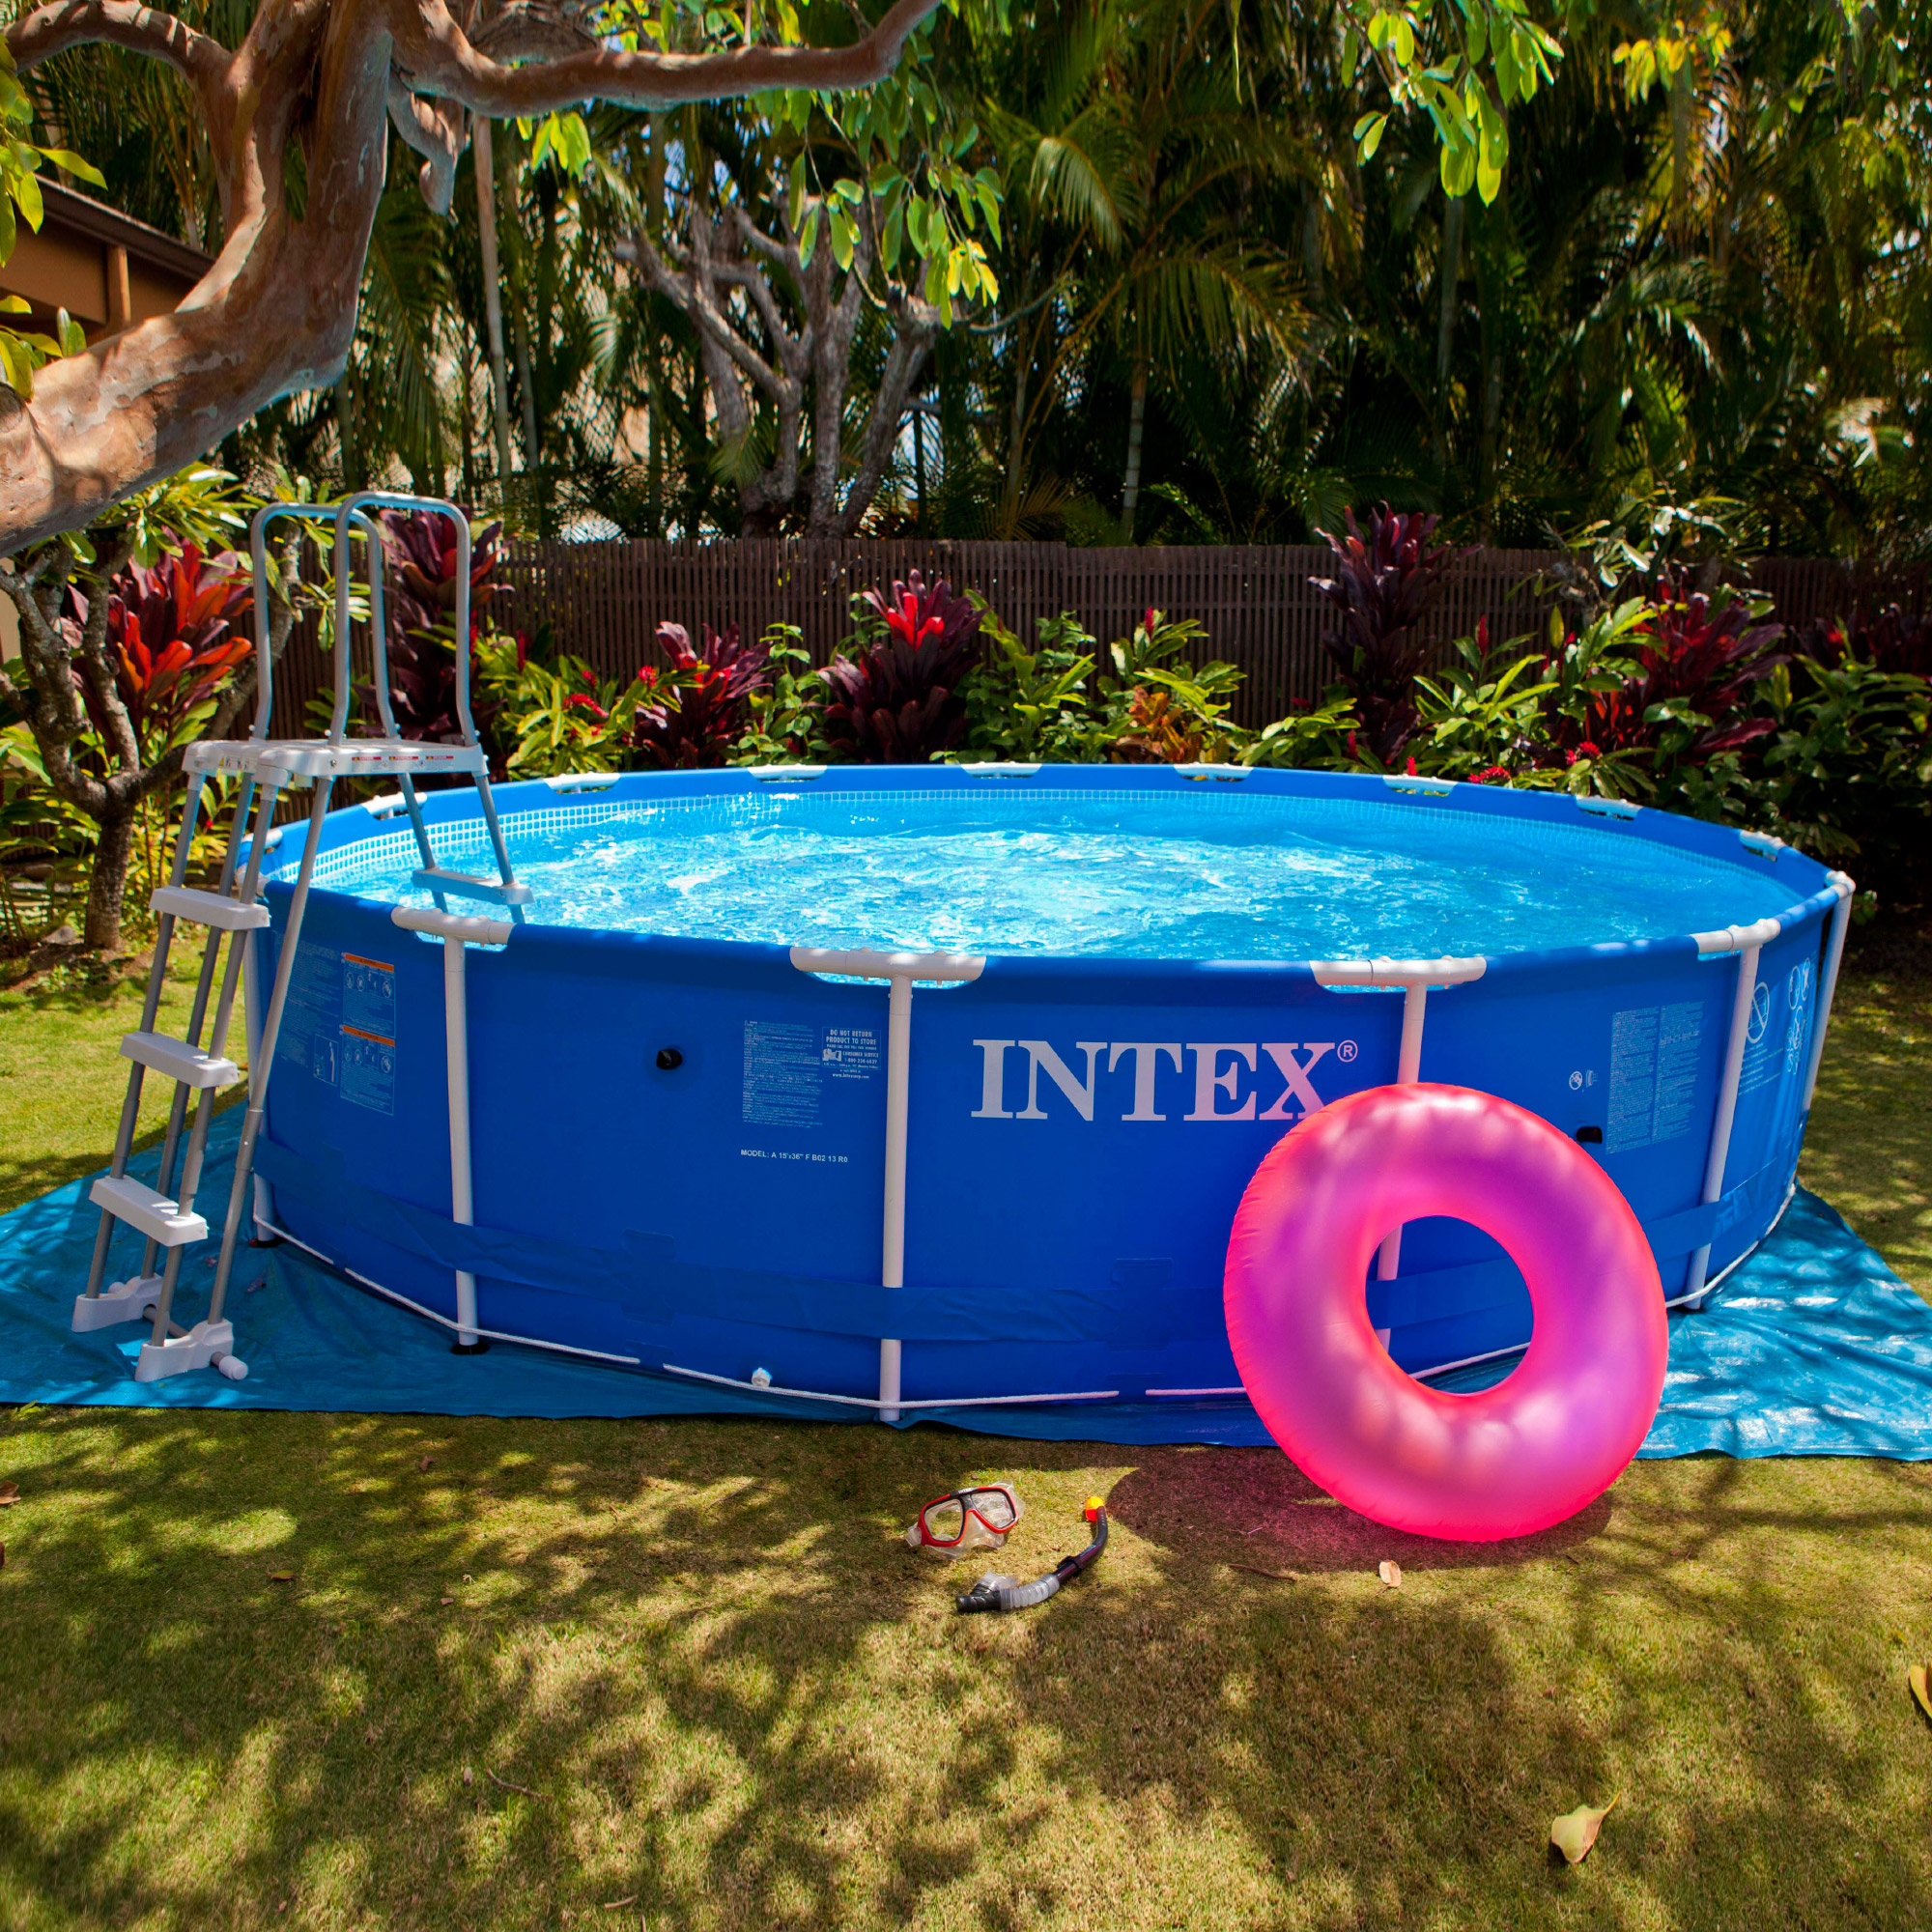 Intex 28202fr piscine hors sol tubulaire ronde 305 x for Piscine hors sol tubulaire ronde